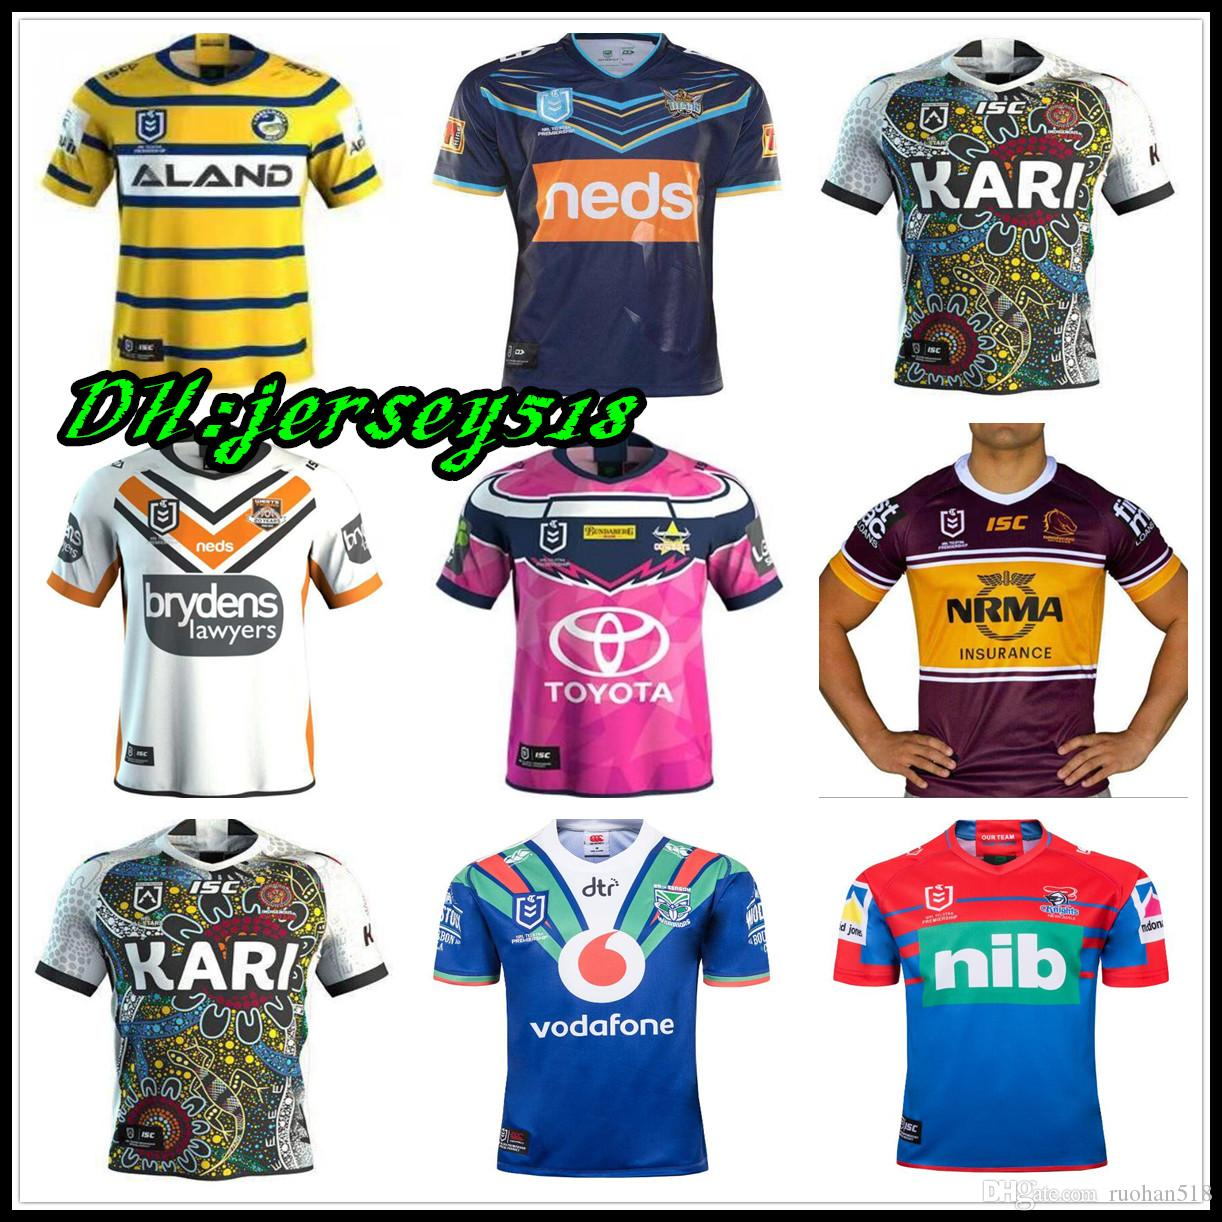 eba2ffc57729 2019 2019 20 NRL RUGBY JERSEY PARRAMATTA EELS Maroons Malou JERSEY Brisbane  Titans Raiders Broncos NRL Rugby League Manly West Tigers Cowboys From  Ruohan518 ...